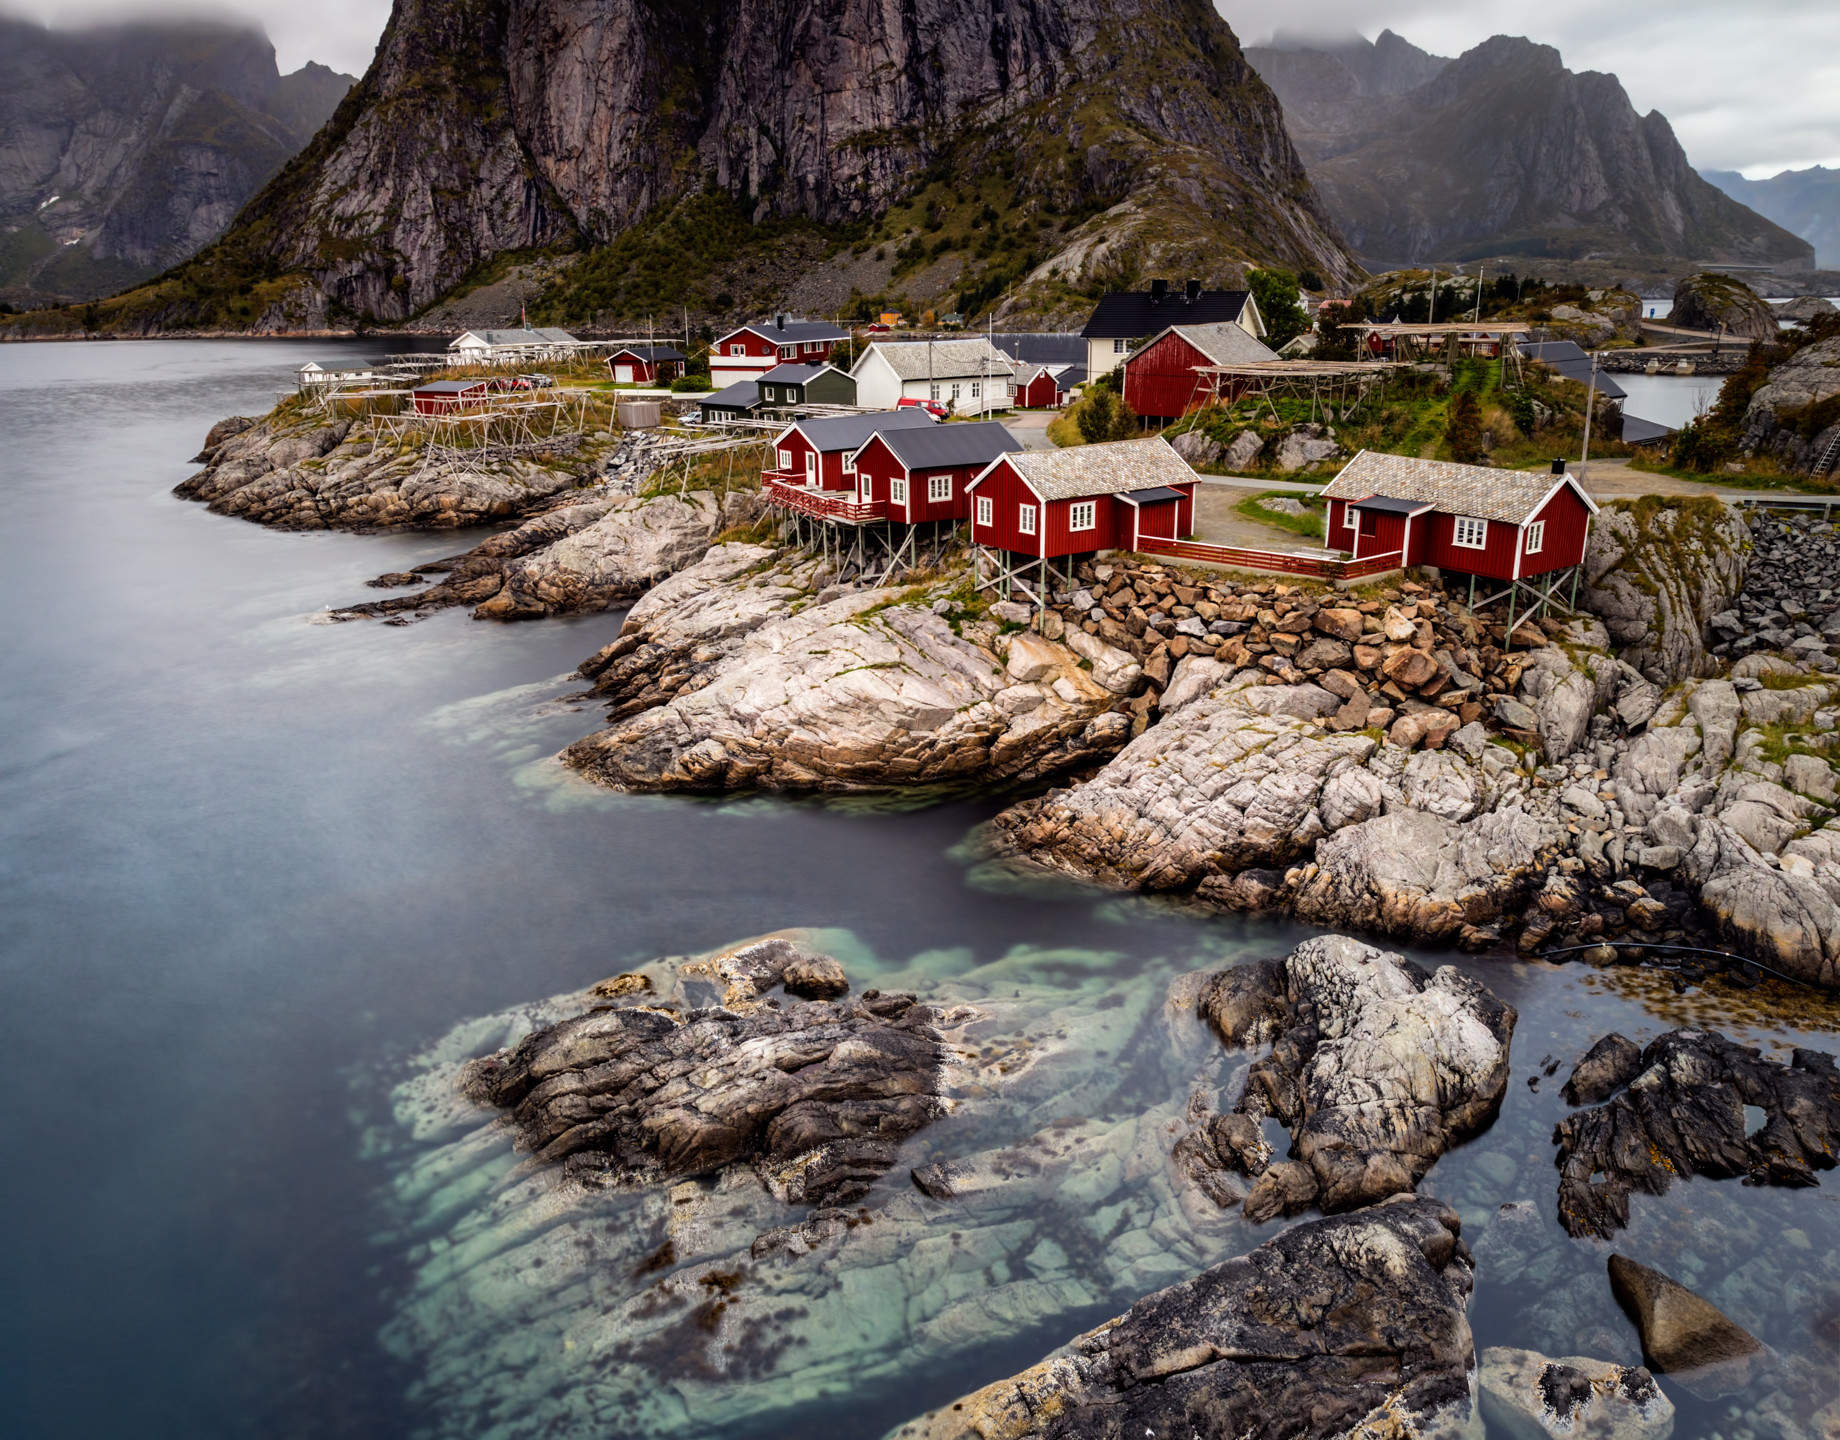 Hamnoy, in the Lofoten Islands Norway, is breathtaking with fishing villages nestled alongside pristine coastlines, all connected by narrow bridges. Behind like giants stand magnificent rugged mountains dominating the landscape creating the most beautiful scenes to capture.  Shot on: Canon 5D Mark IV and Canon 16-35mm f2.8 Mark II lens